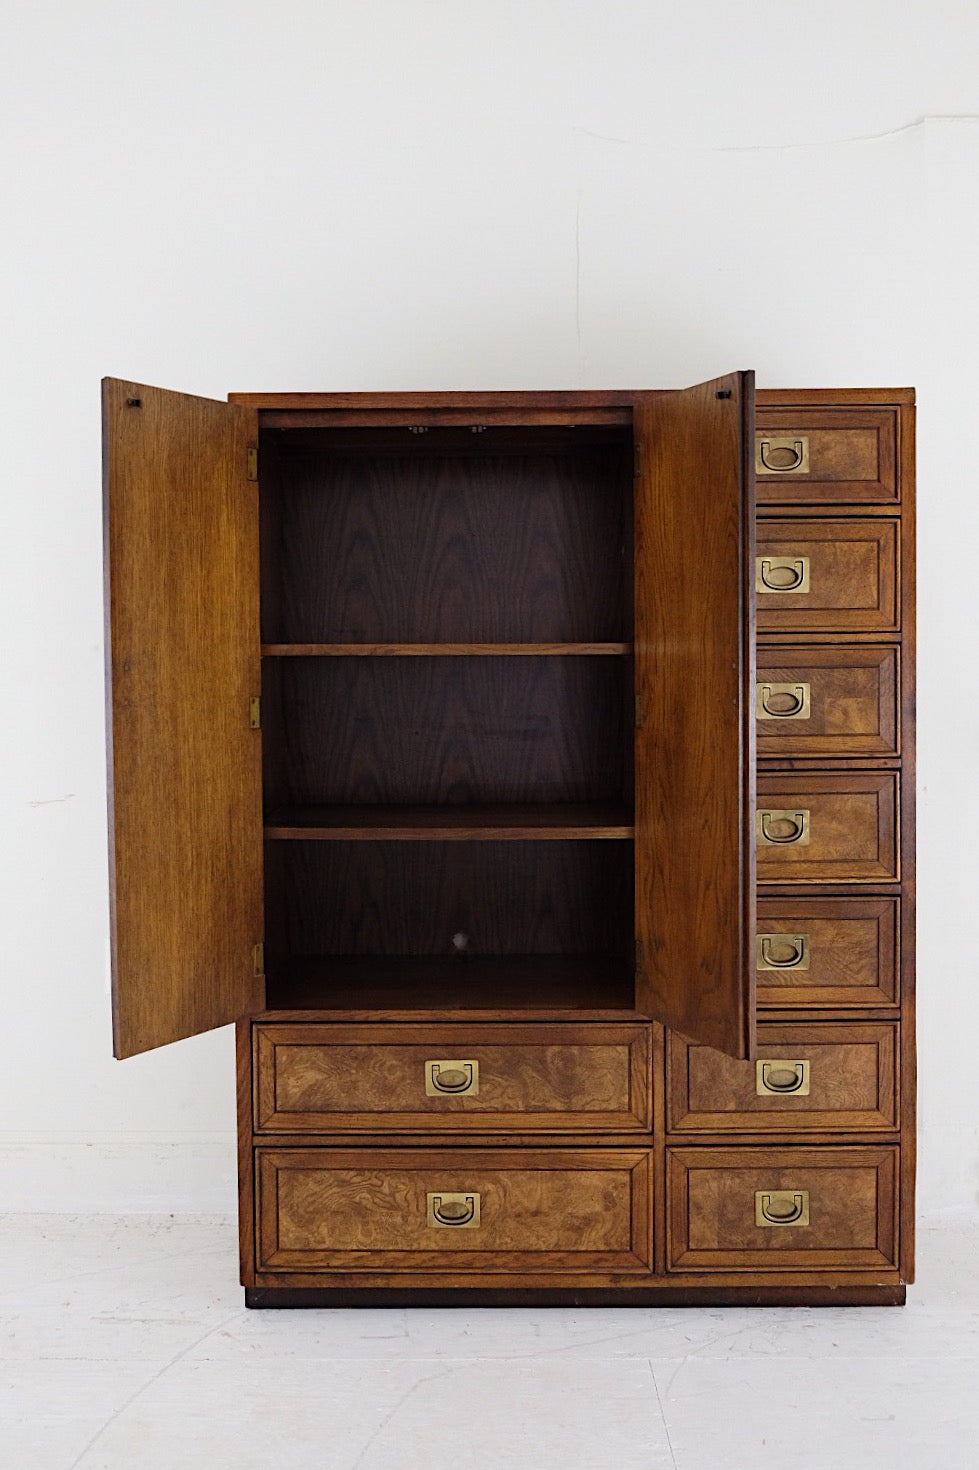 Burl Veneer Campaign Style Wardrobe Cabinet with Three Shelves Nine Drawers Brass Pulls